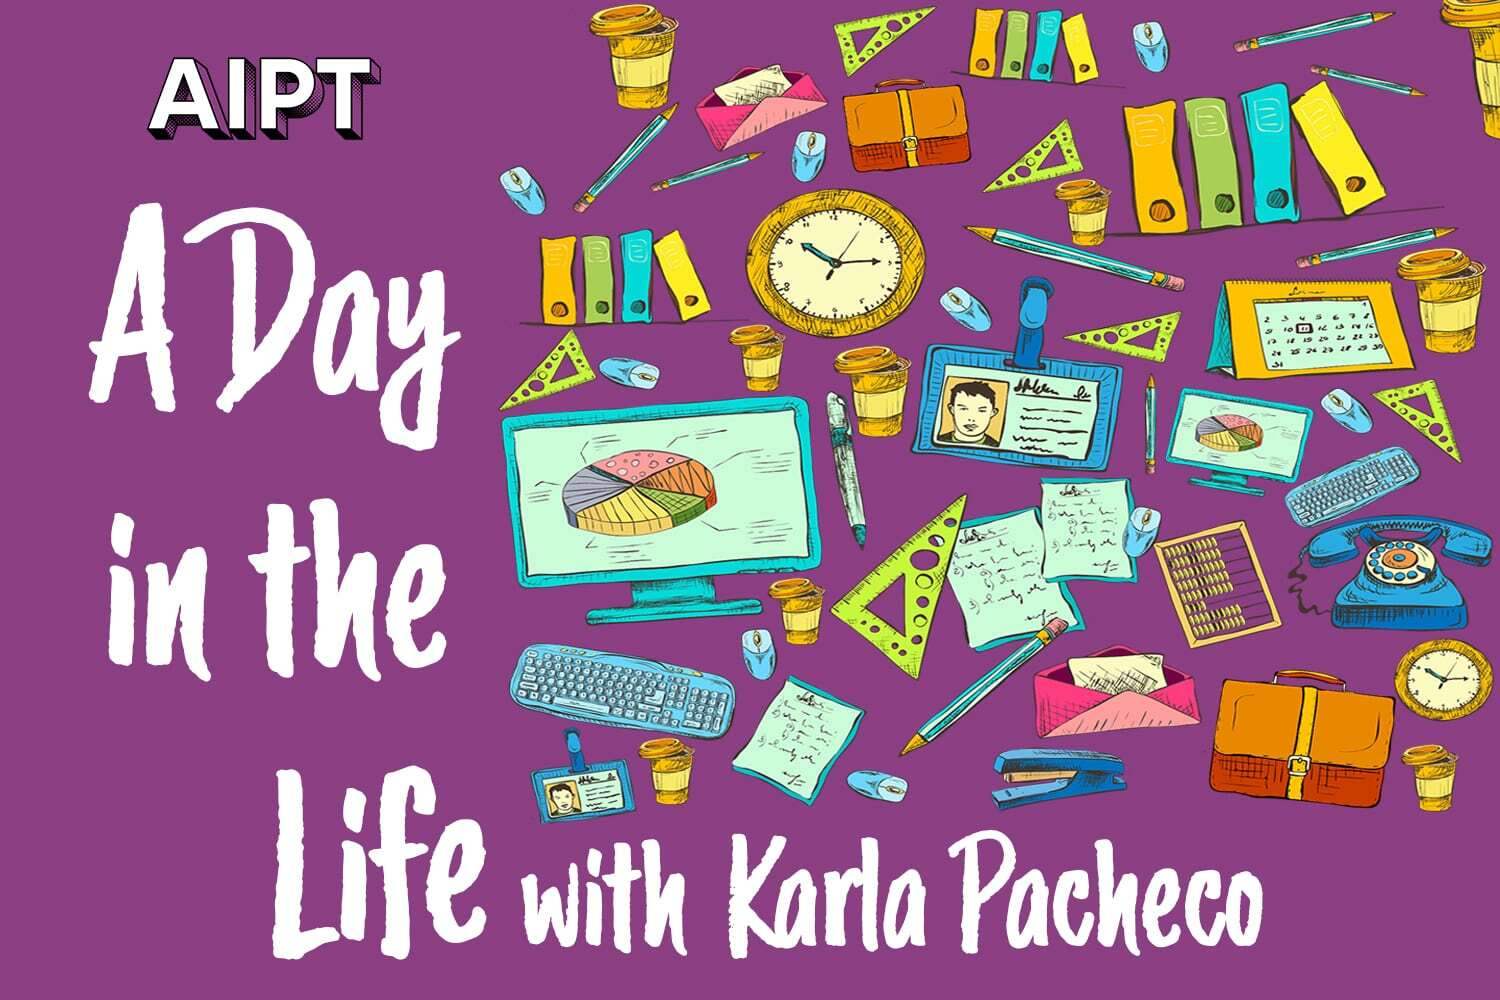 A Day in the Life: Karla Pacheco